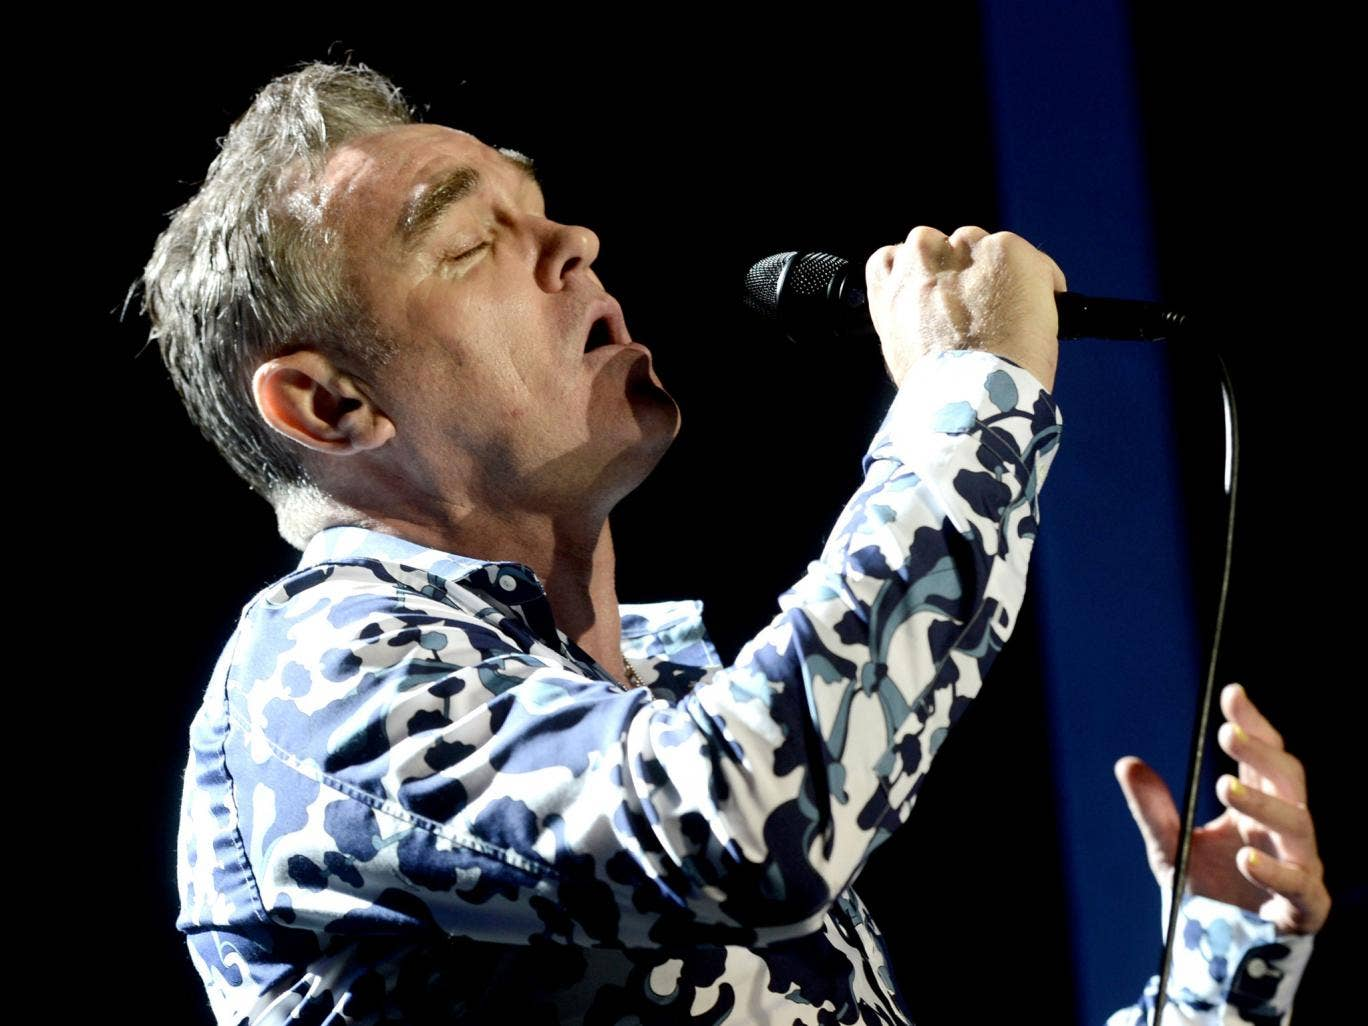 Morrissey is to release his first record in five years